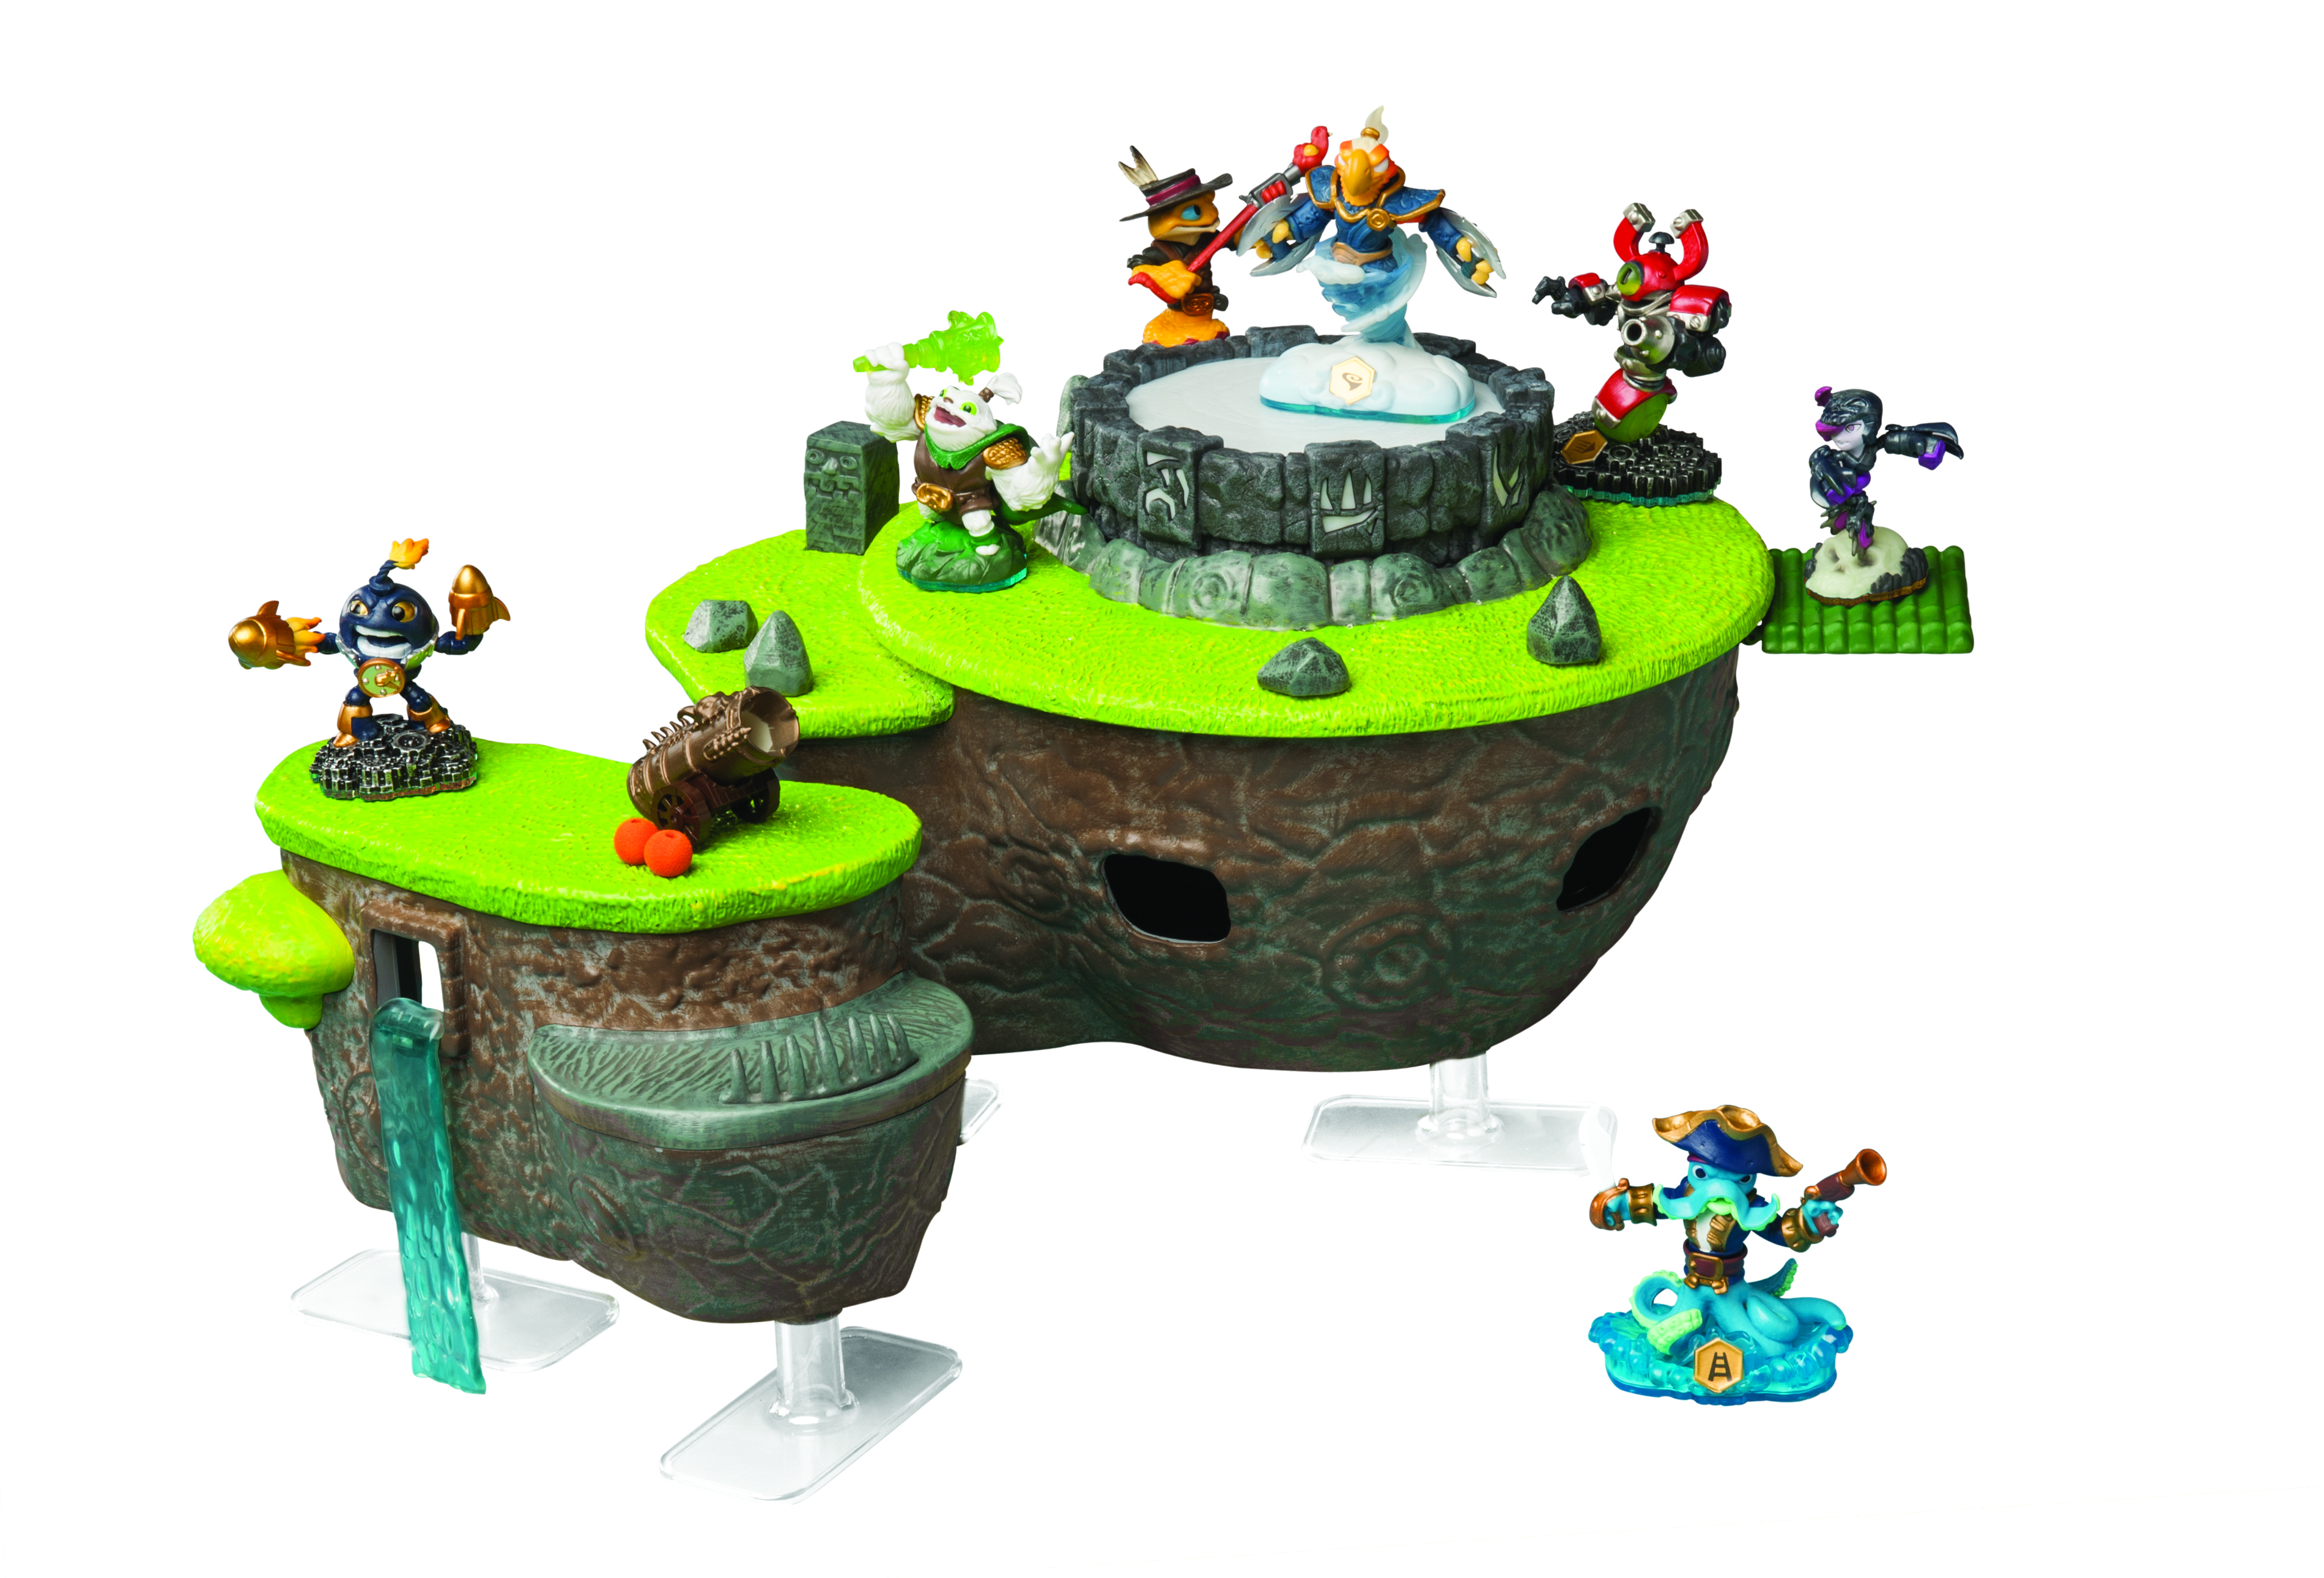 Uncategorized Skylanders Swap Force.com skylanders swap force funplay hideaway skylands by powera 2 2